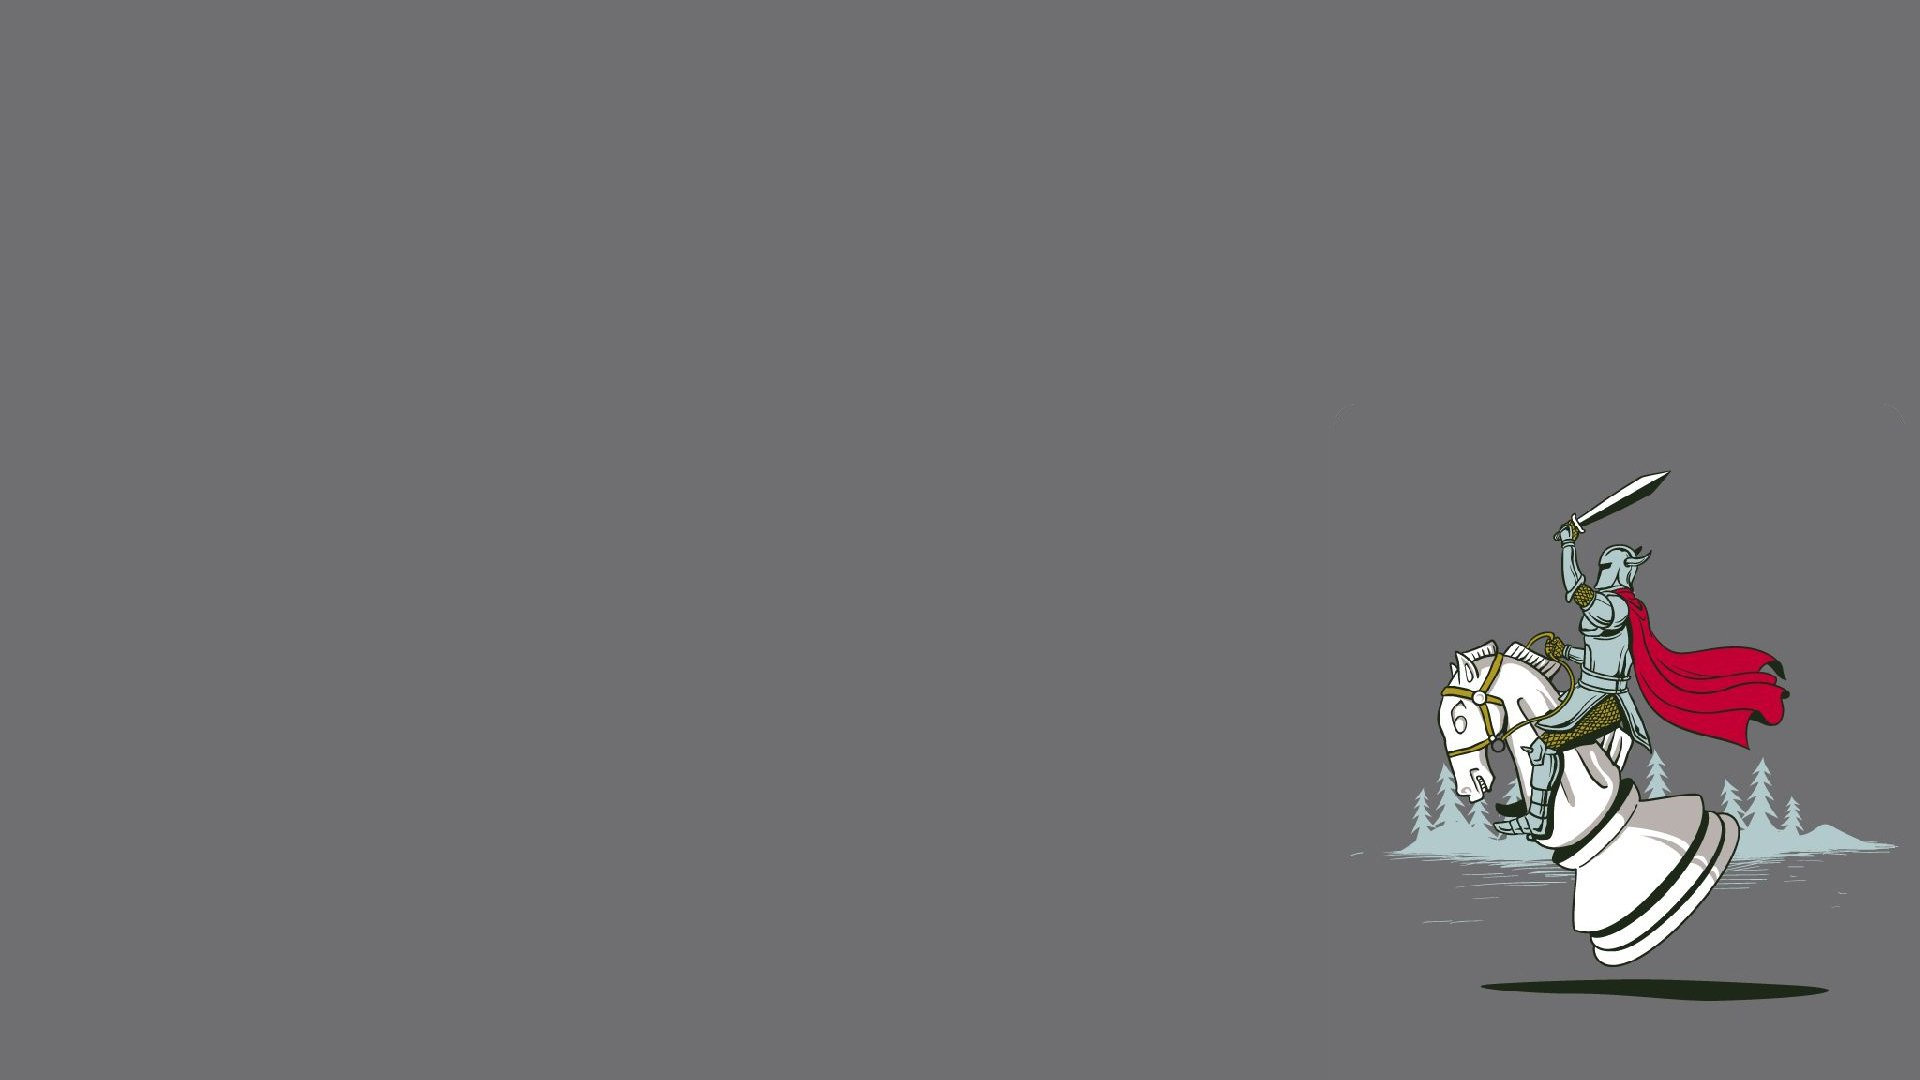 Minimalistic Knights Chess Wallpaper